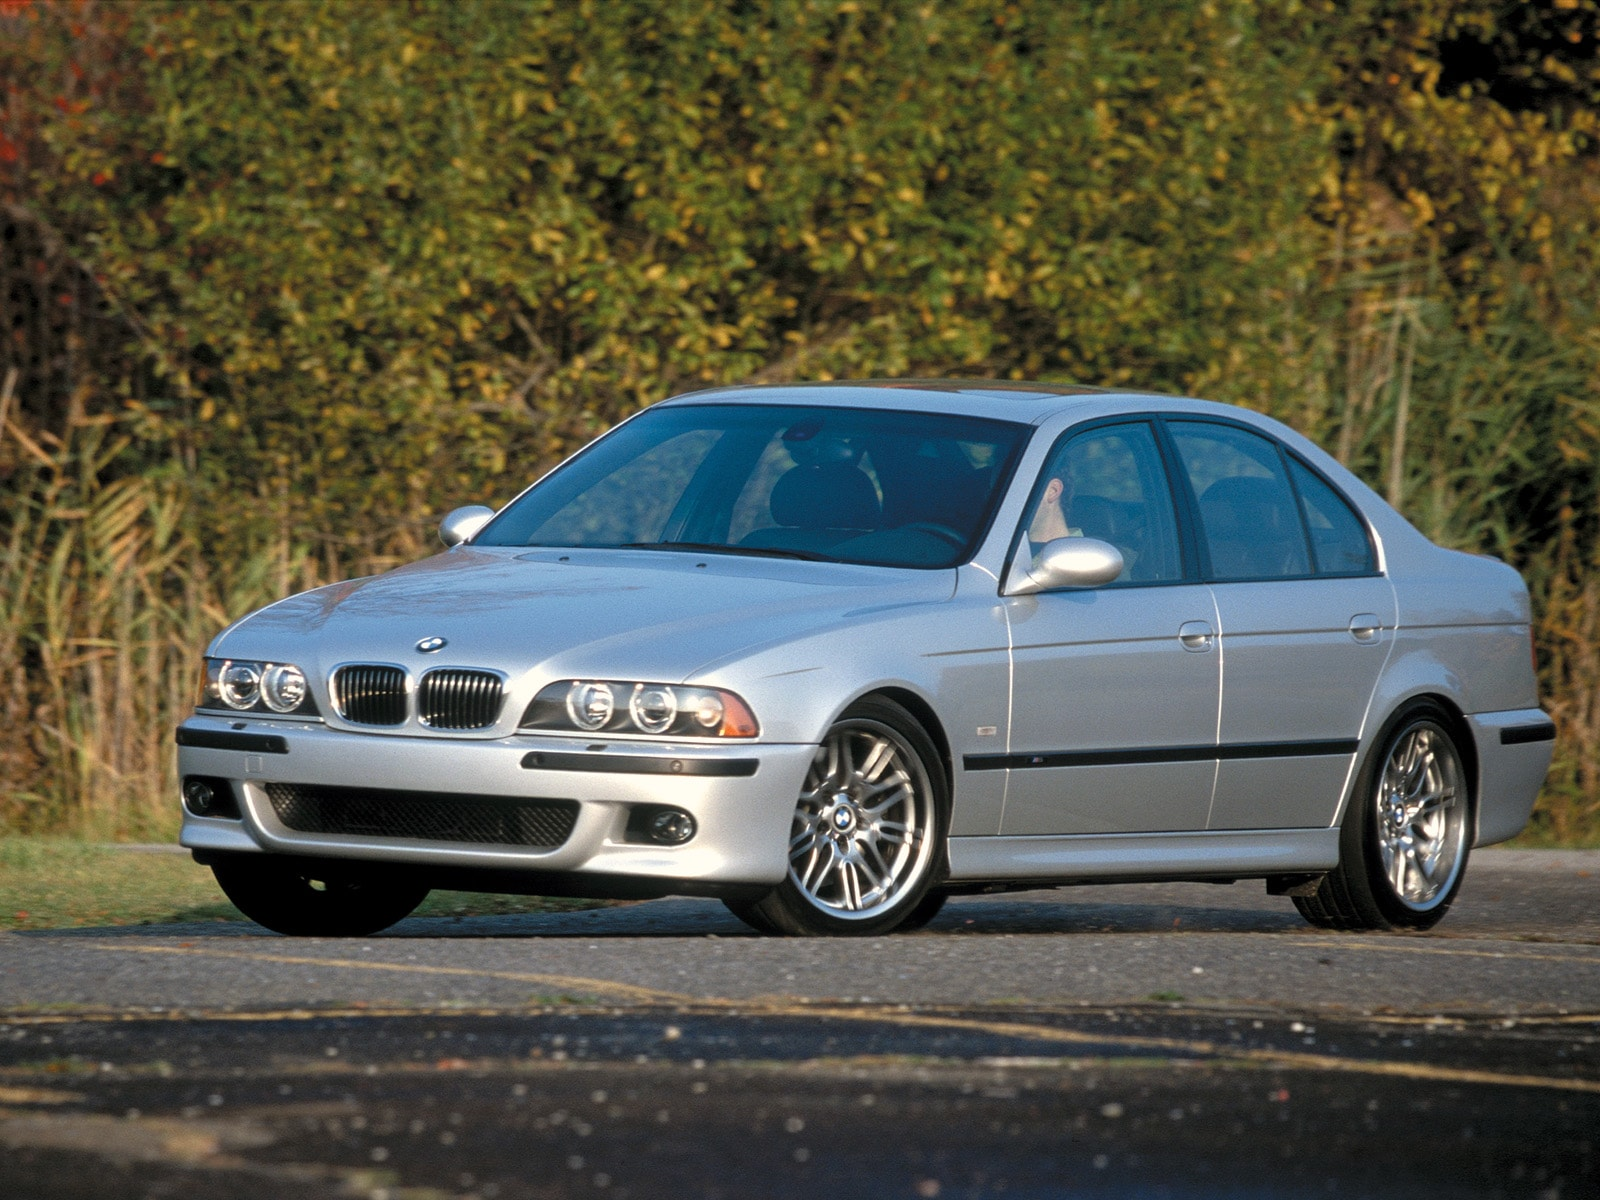 1999 BMW M5 Widescreen for desktop